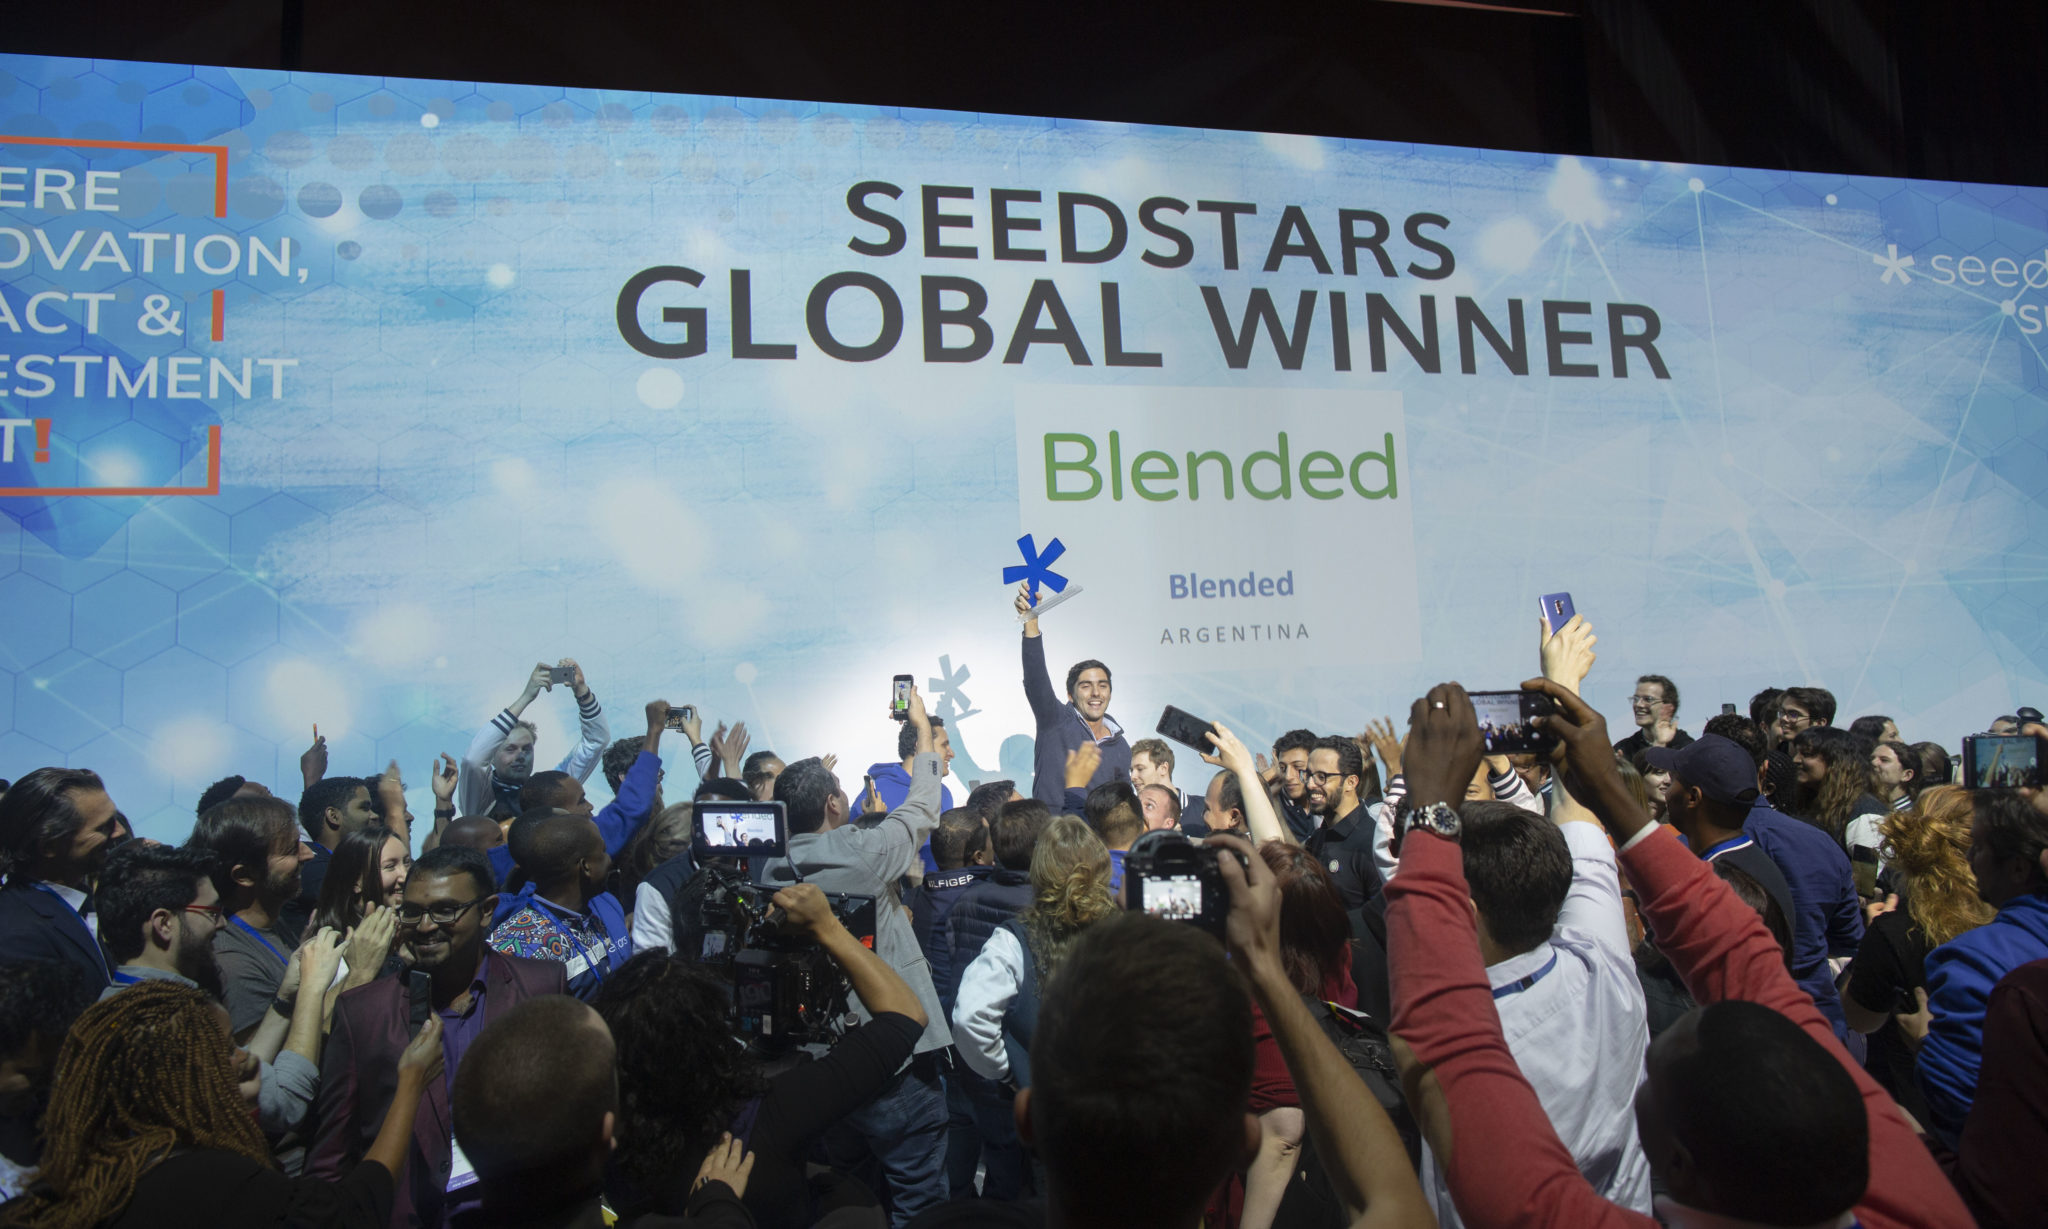 Seedstars Summit 2019: Seedstars Global Winner Blended